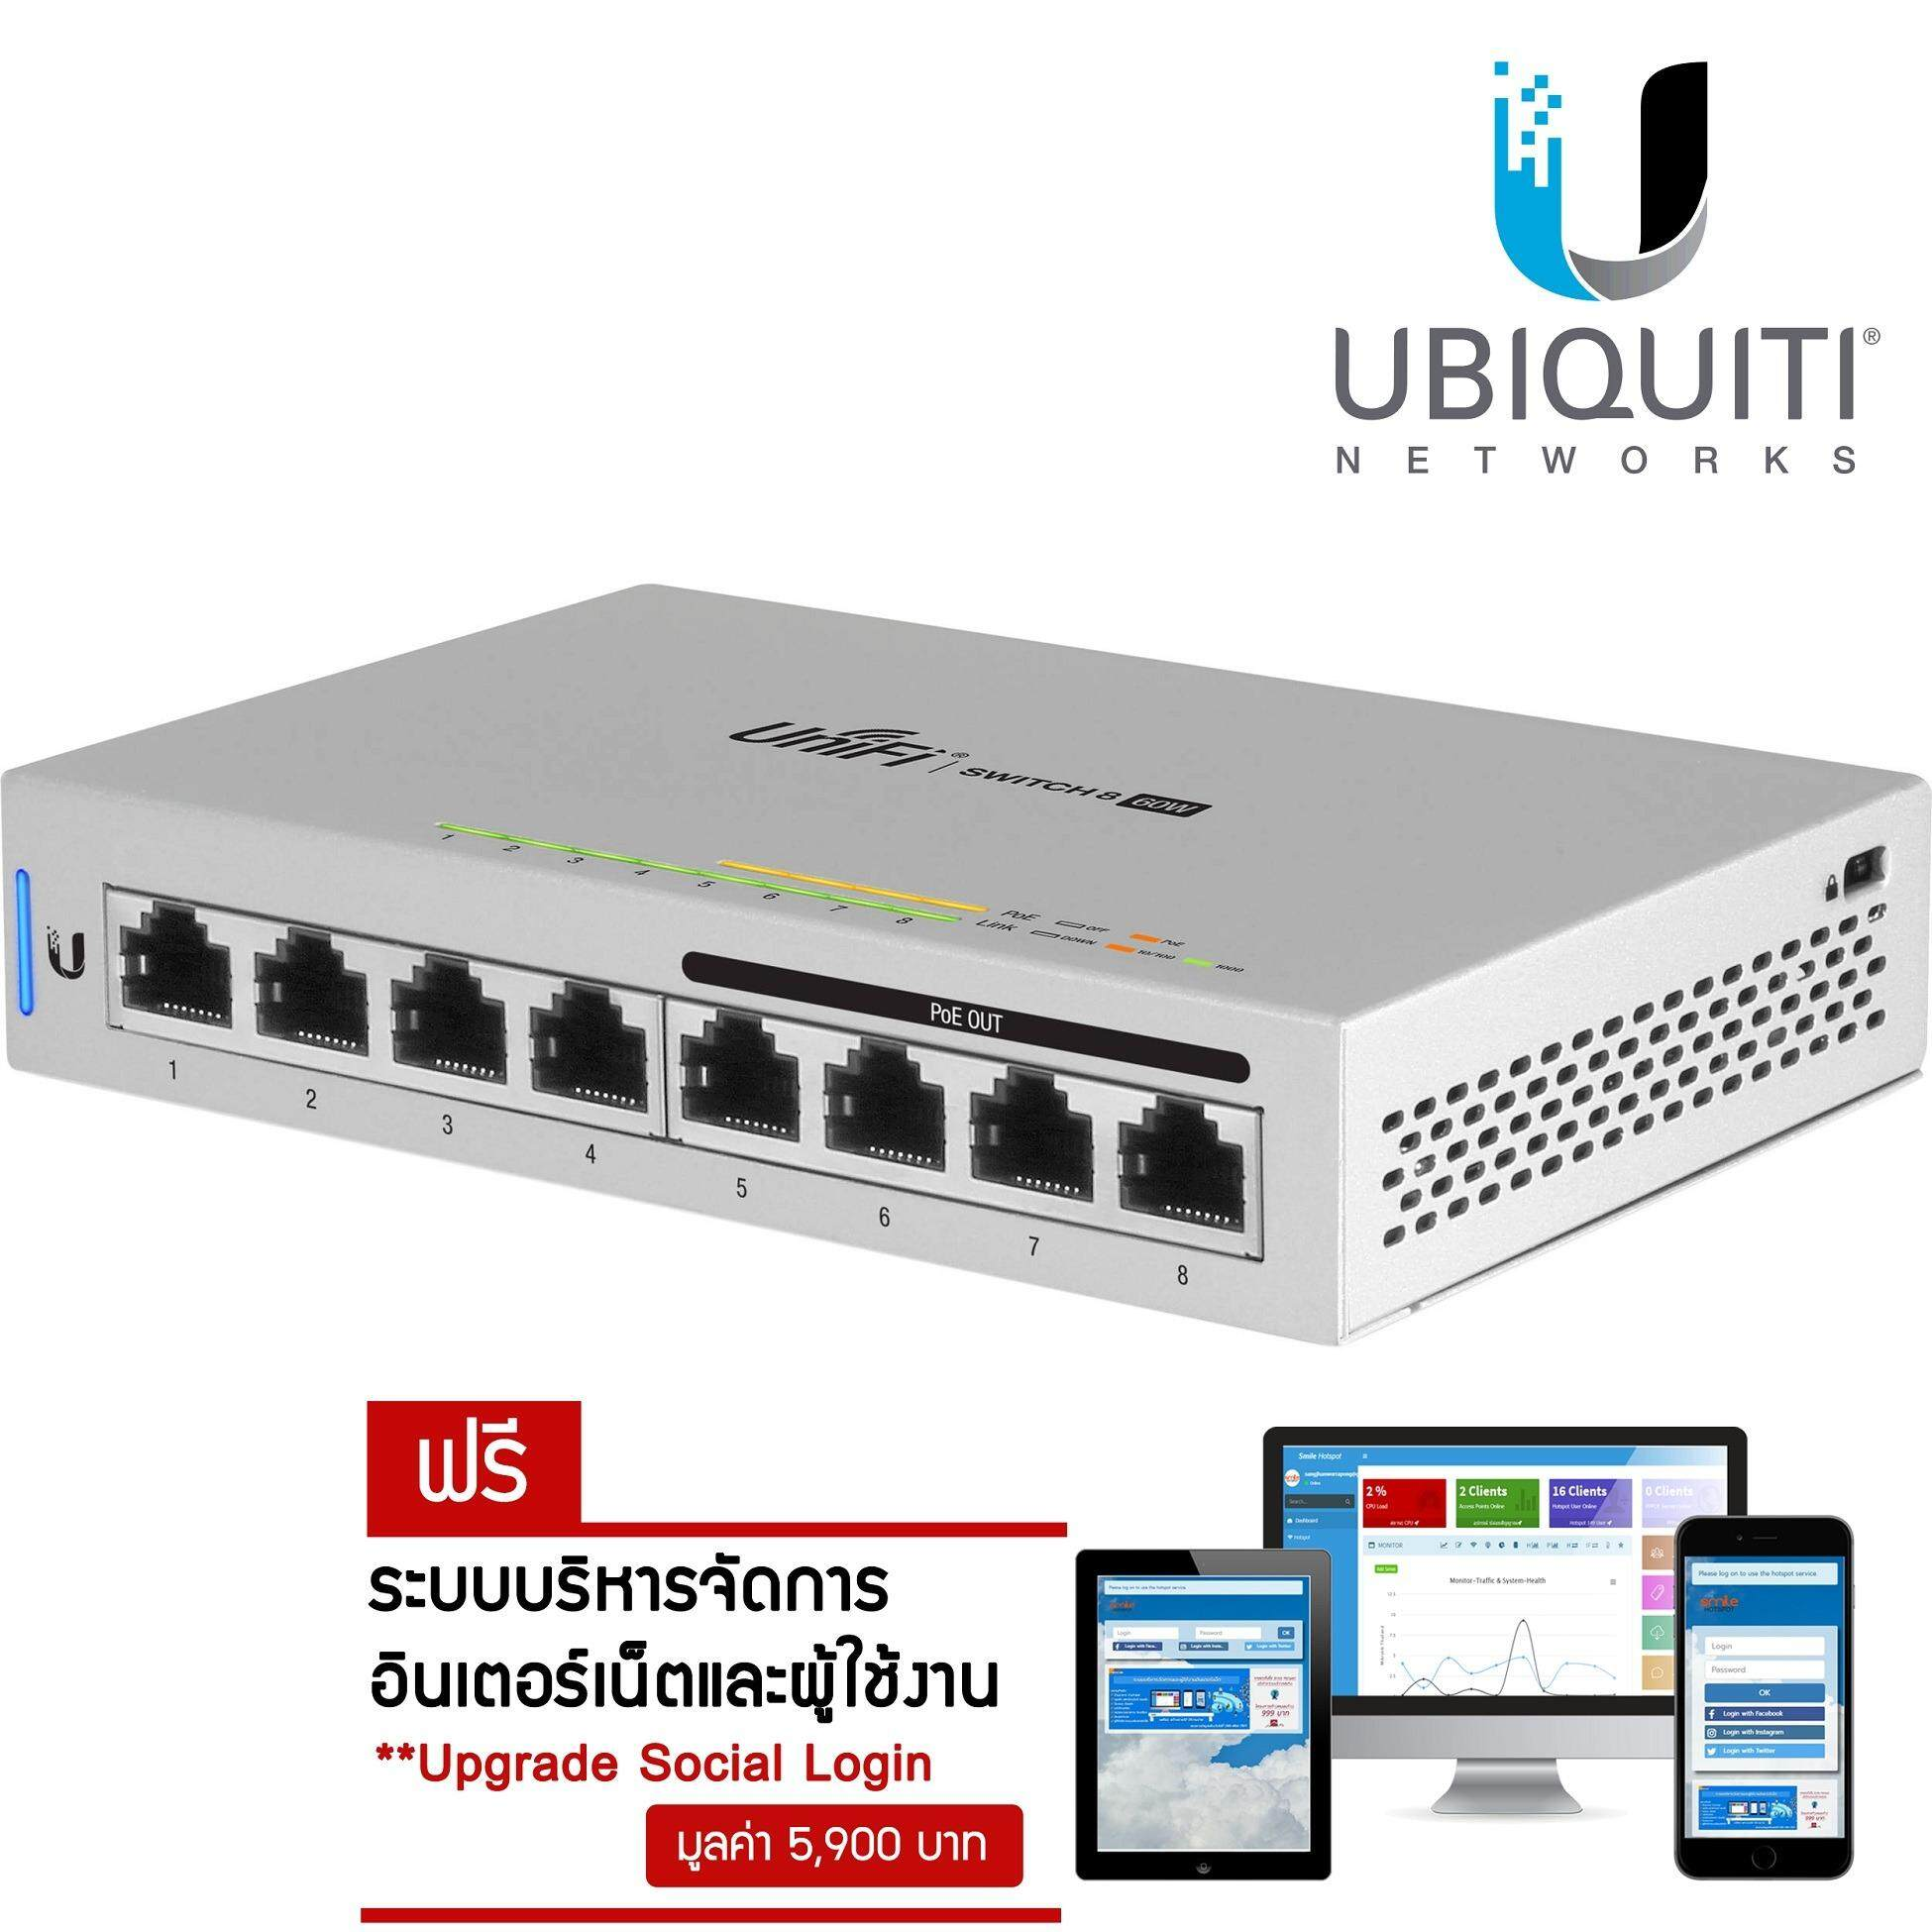 ราคา Ubiquiti Us 8 60W Unifi 8 Port Layer 2 Managed Desktop Gigabit Poe Switch W 4X Poe Ports 60W Free Smile Hotspot No Monthly Fee Suitable For Use With Mikrotik ถูก